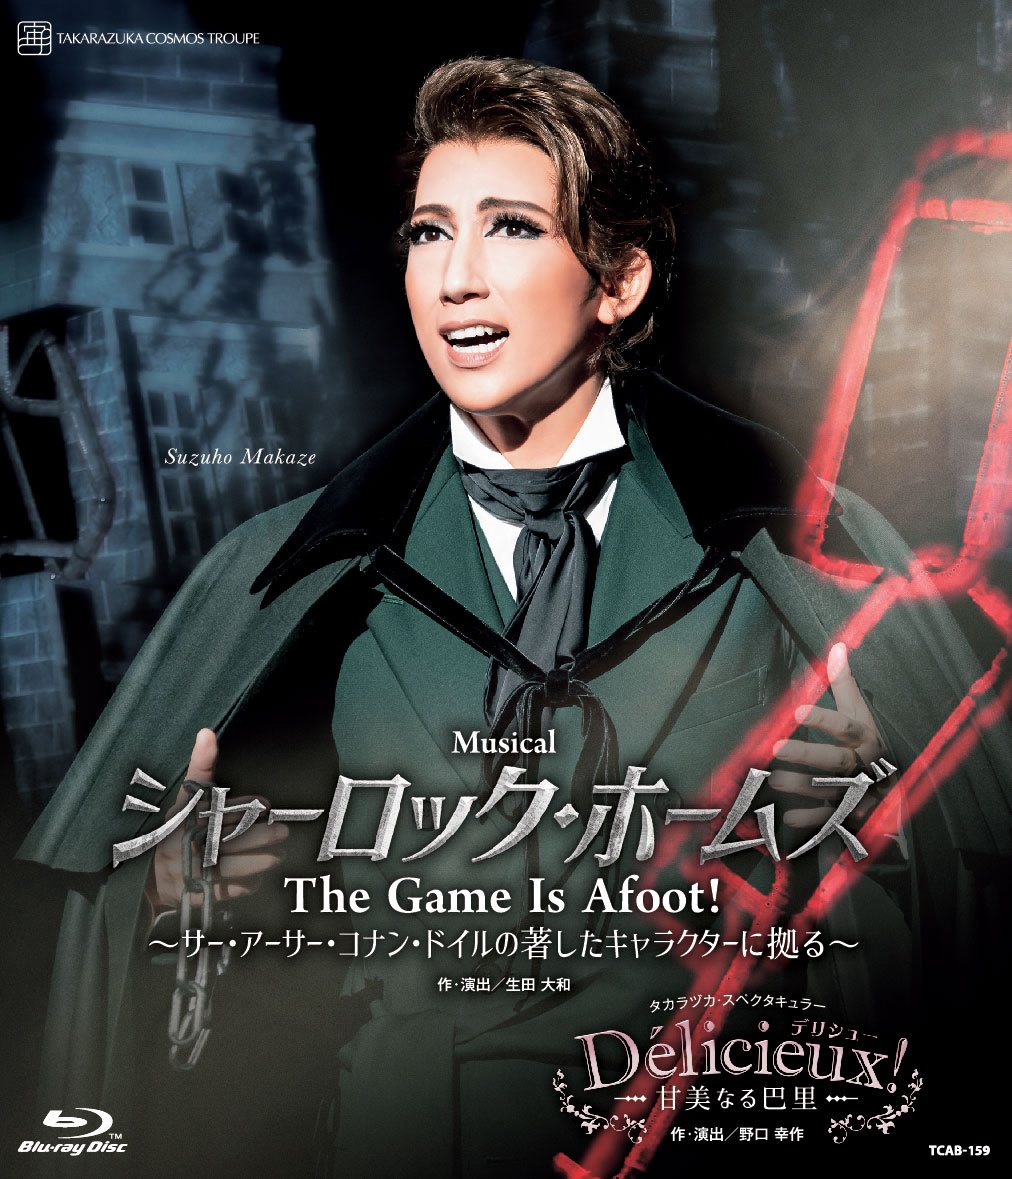 Musical『シャーロック・ホームズーThe Game Is Afoot!-』 ~サー・アーサー・コナン・ドイルの著したキャラクターに拠る~/タカラヅカ・スペクタキュラー『Délicieux(デリシュー)!-甘美なる巴里ー』【Blu-ray】